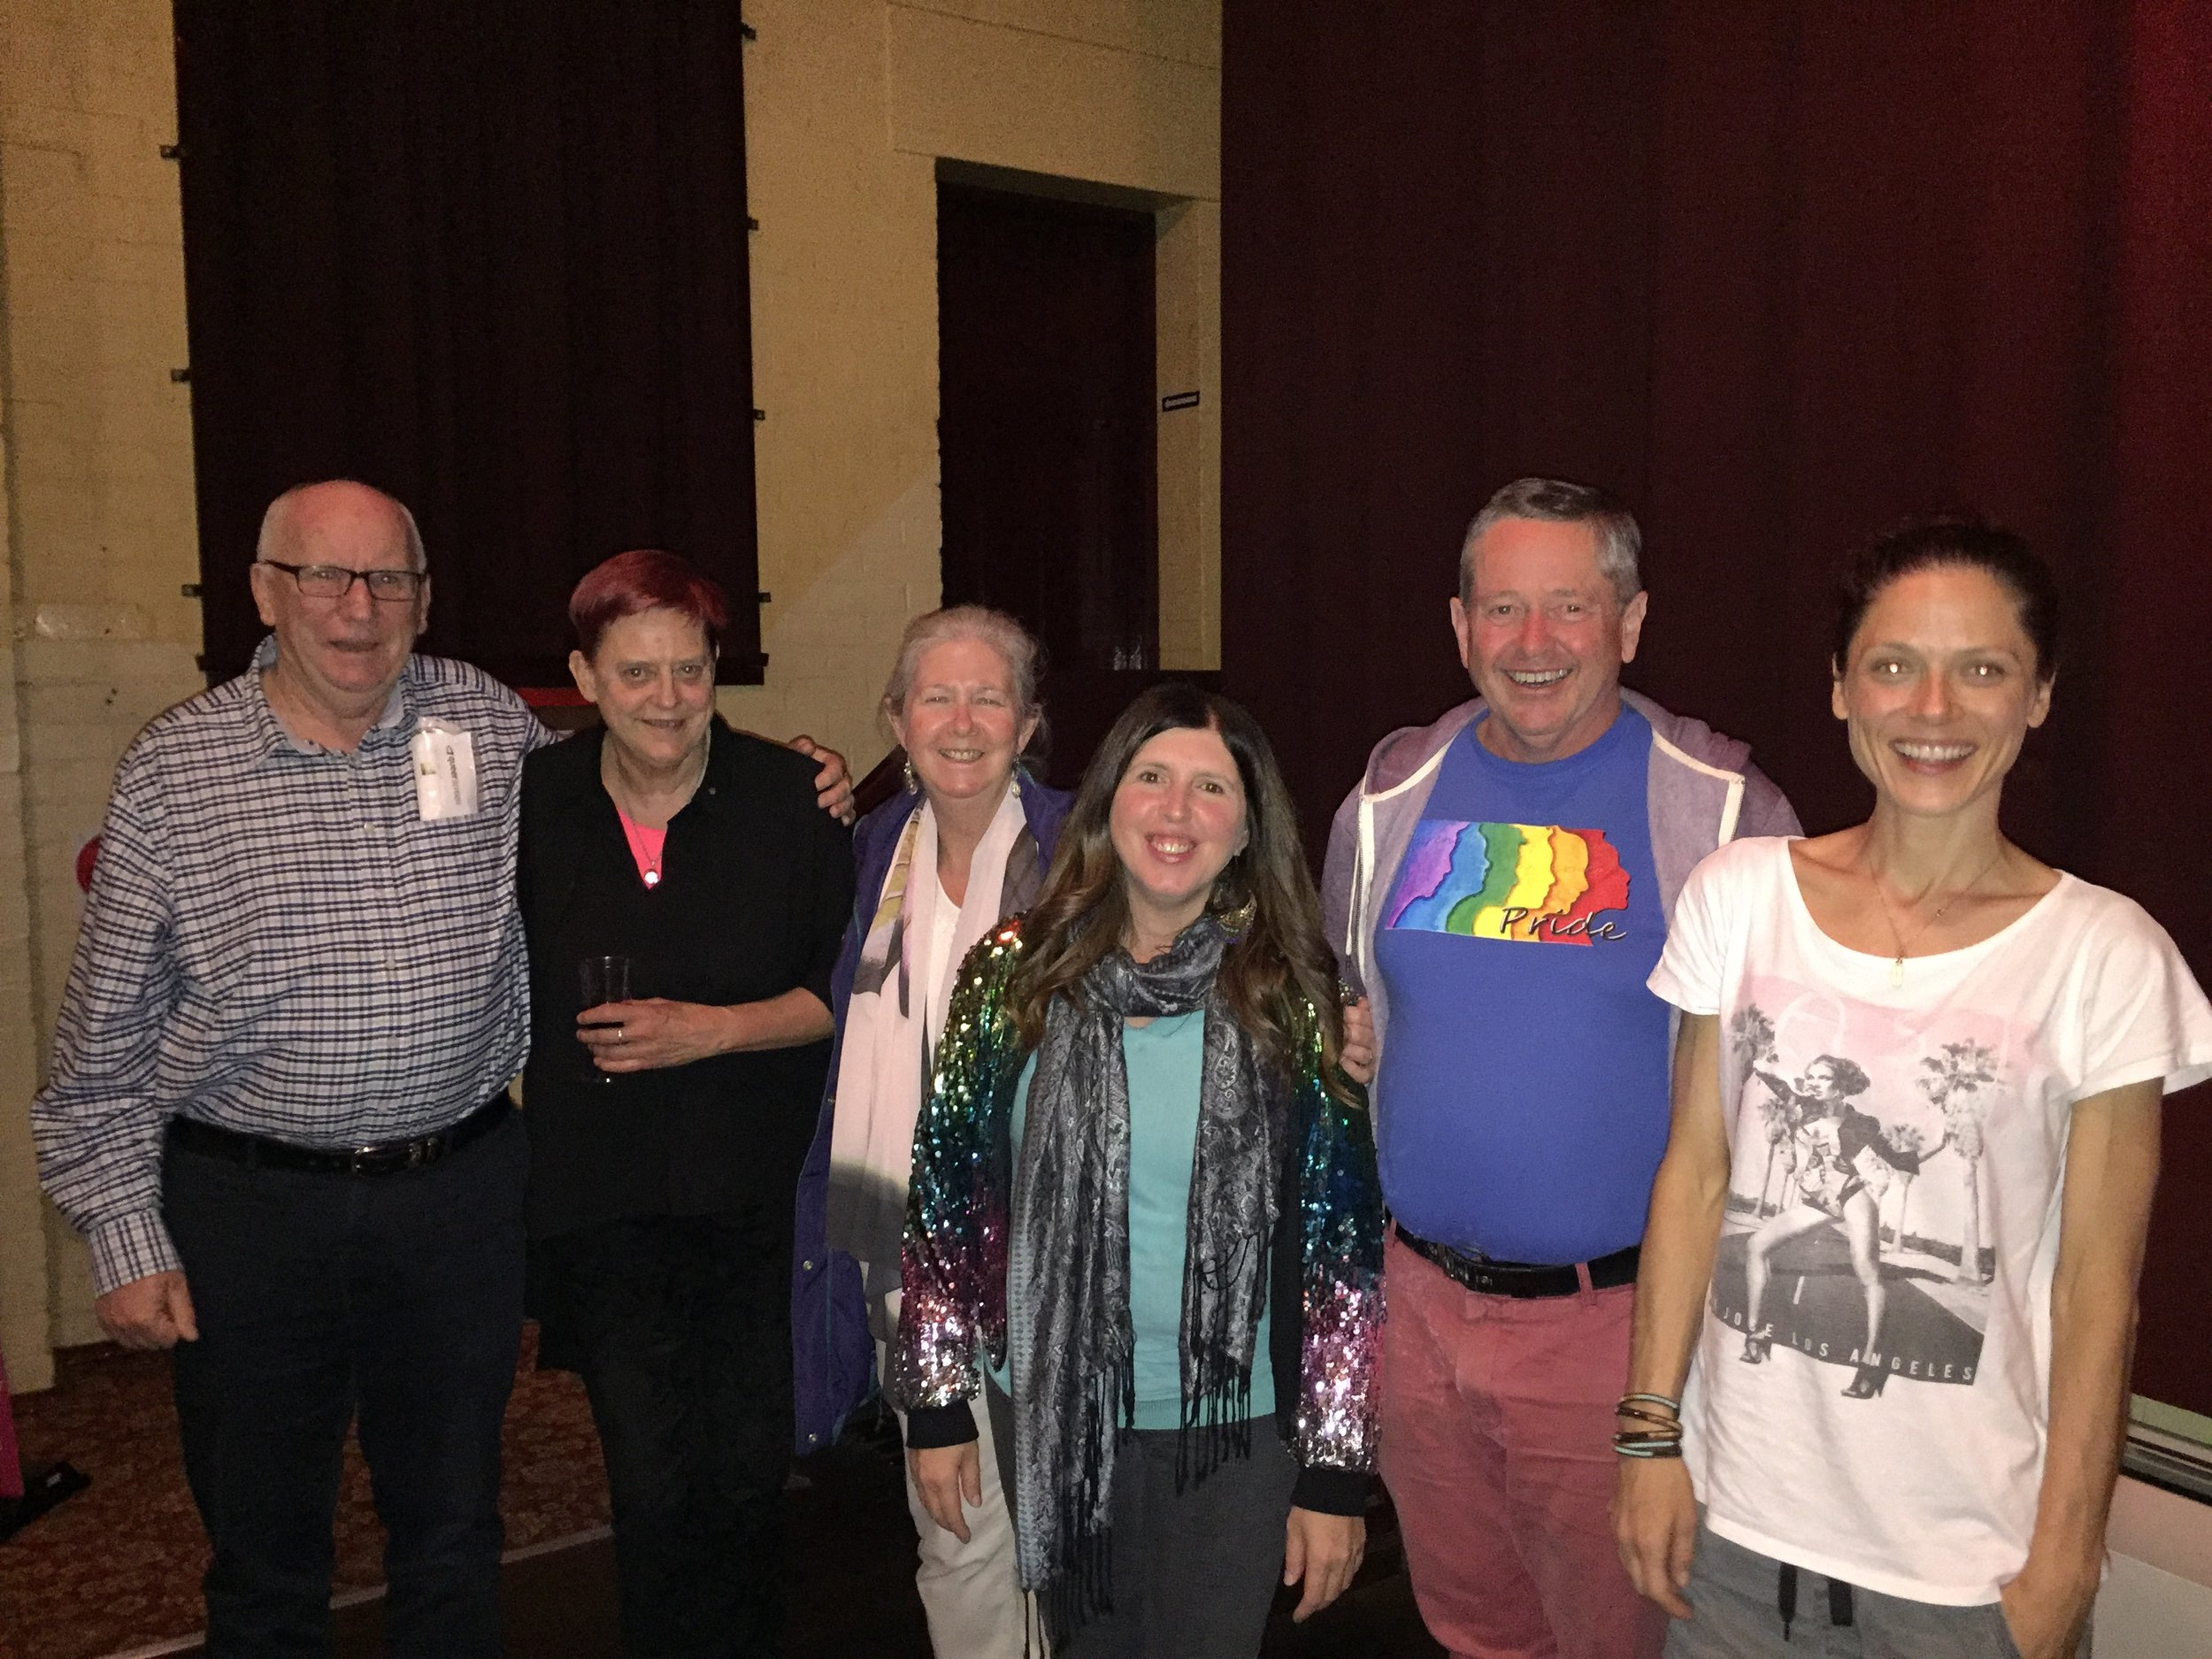 From left, Ron(PFLAG), Jo(Pink Mountains), Ruth(me), Tiphanee (Queer Screen organiser), Malcolm (Australian Marriage Equality), Kylie(friend).  from Ruth Green PFLAG Vice President